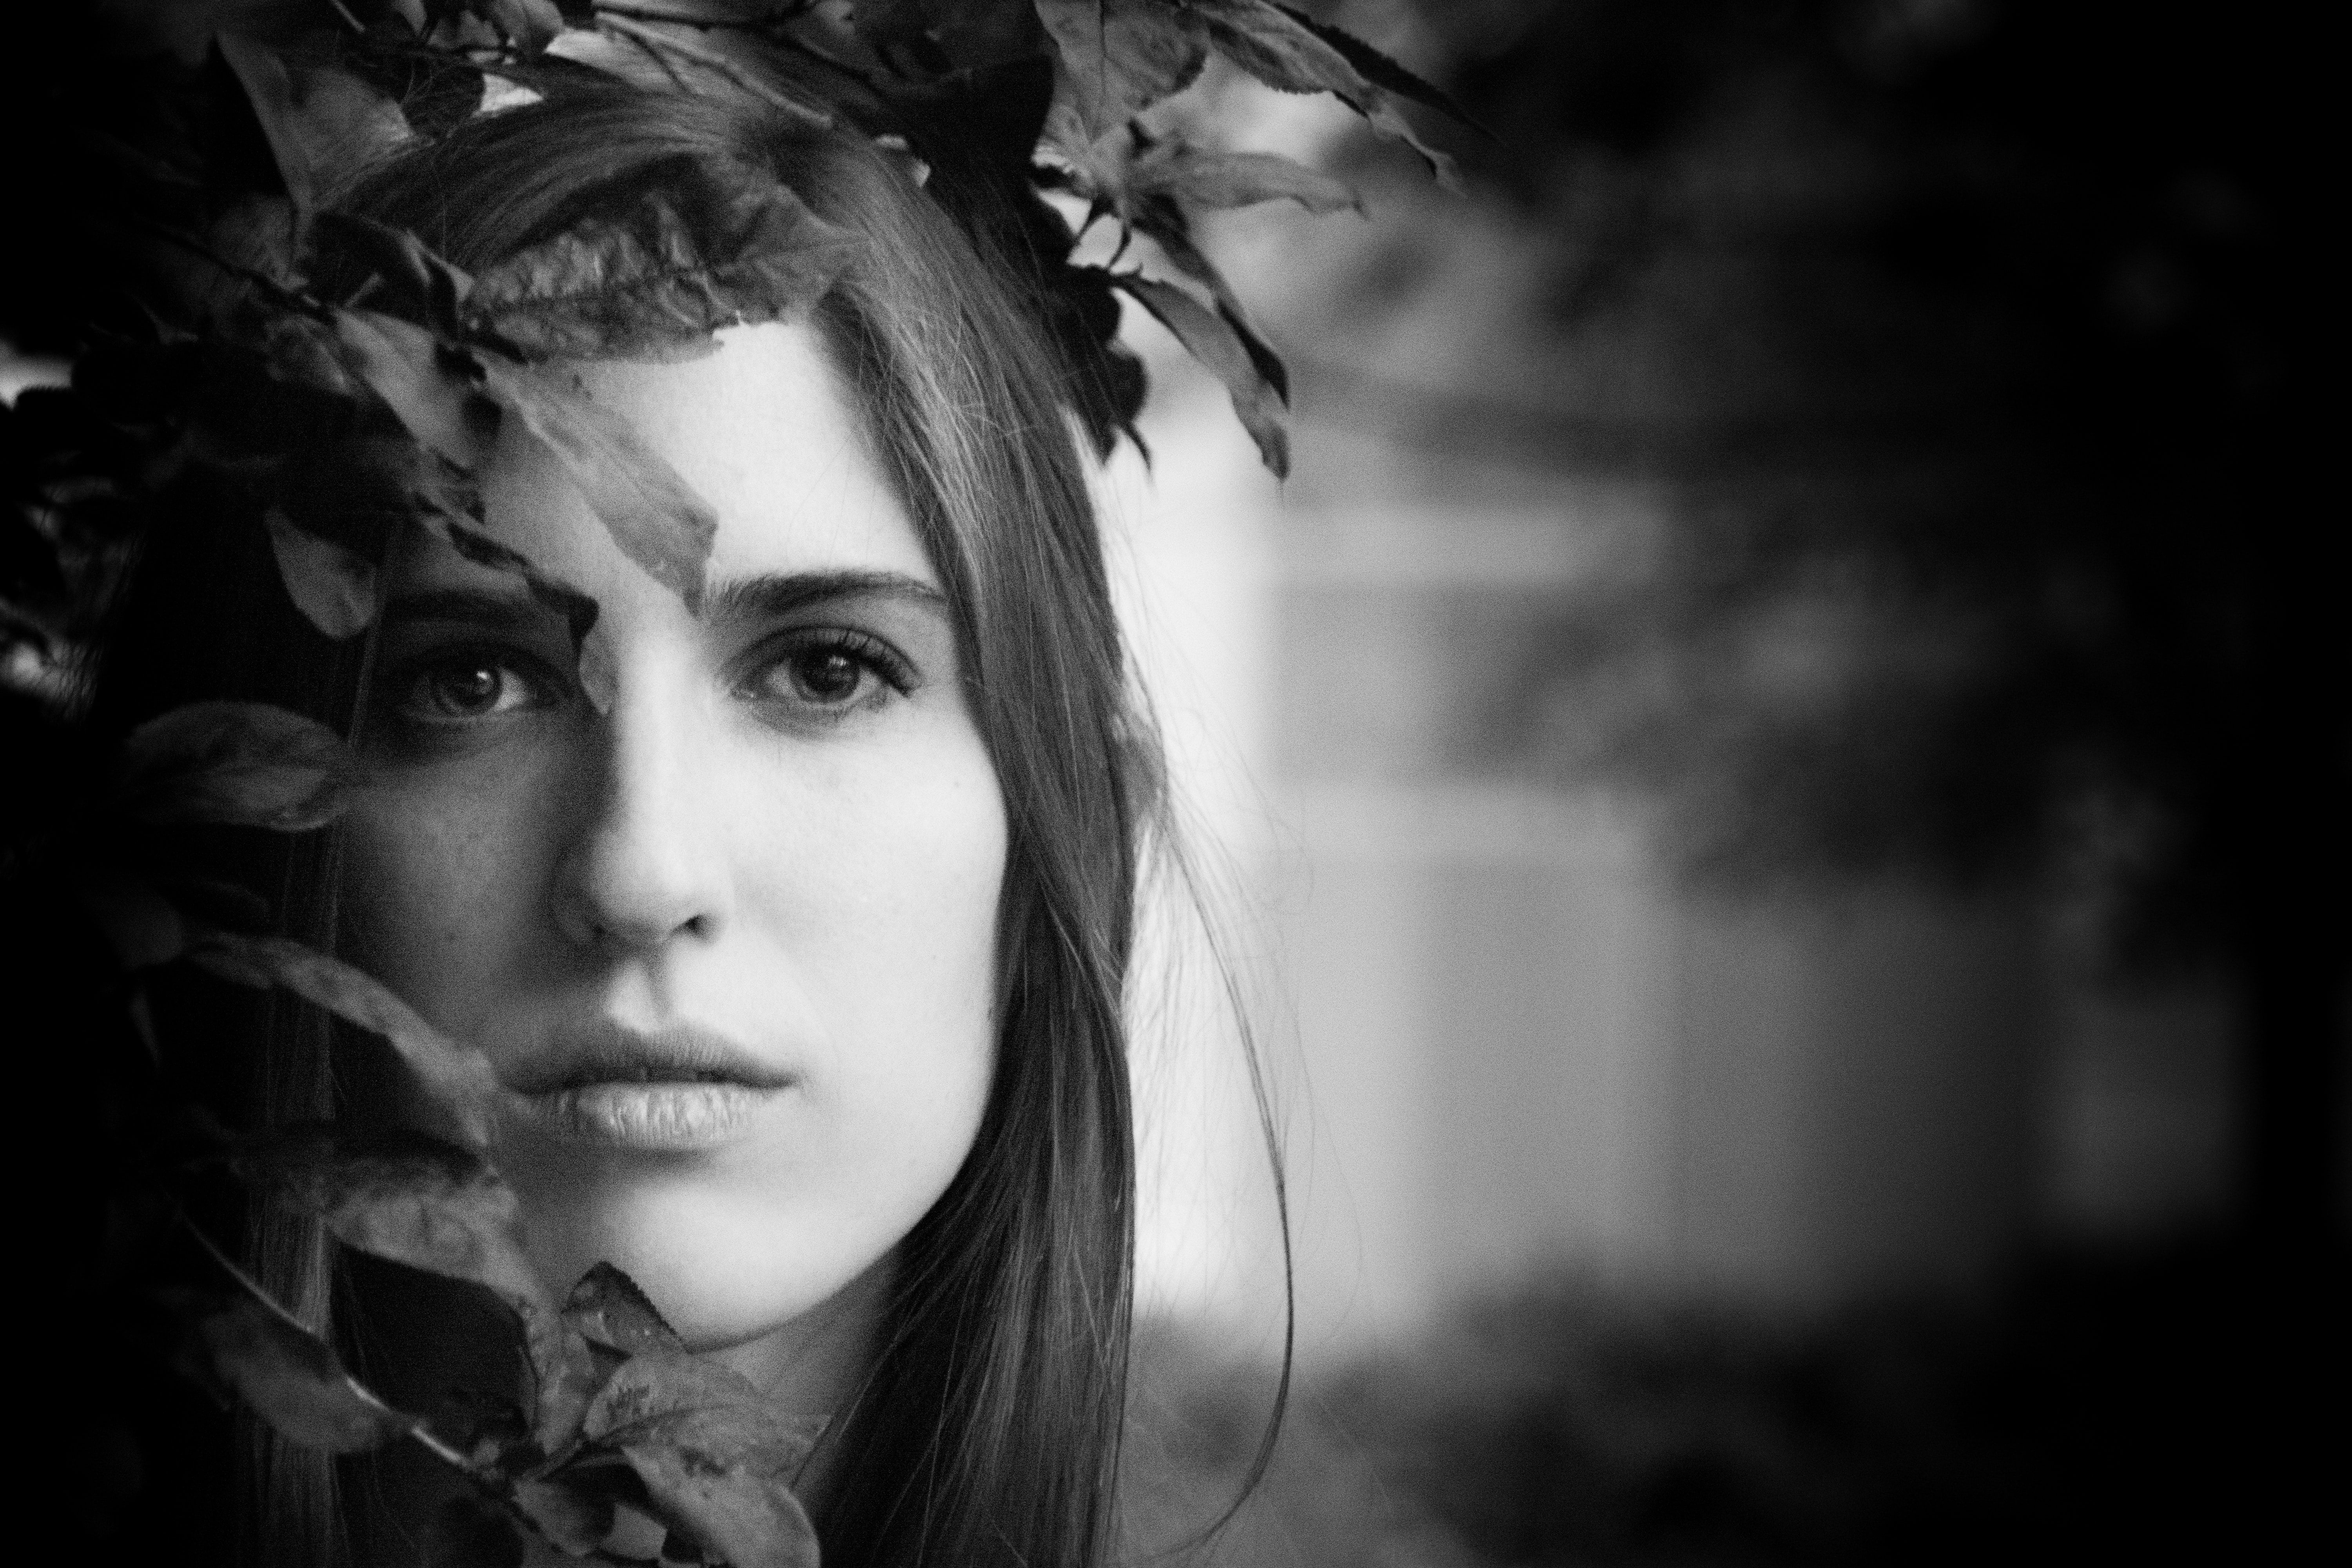 Black and white portrait shot of attractive dark haired woman's head amongst leaves